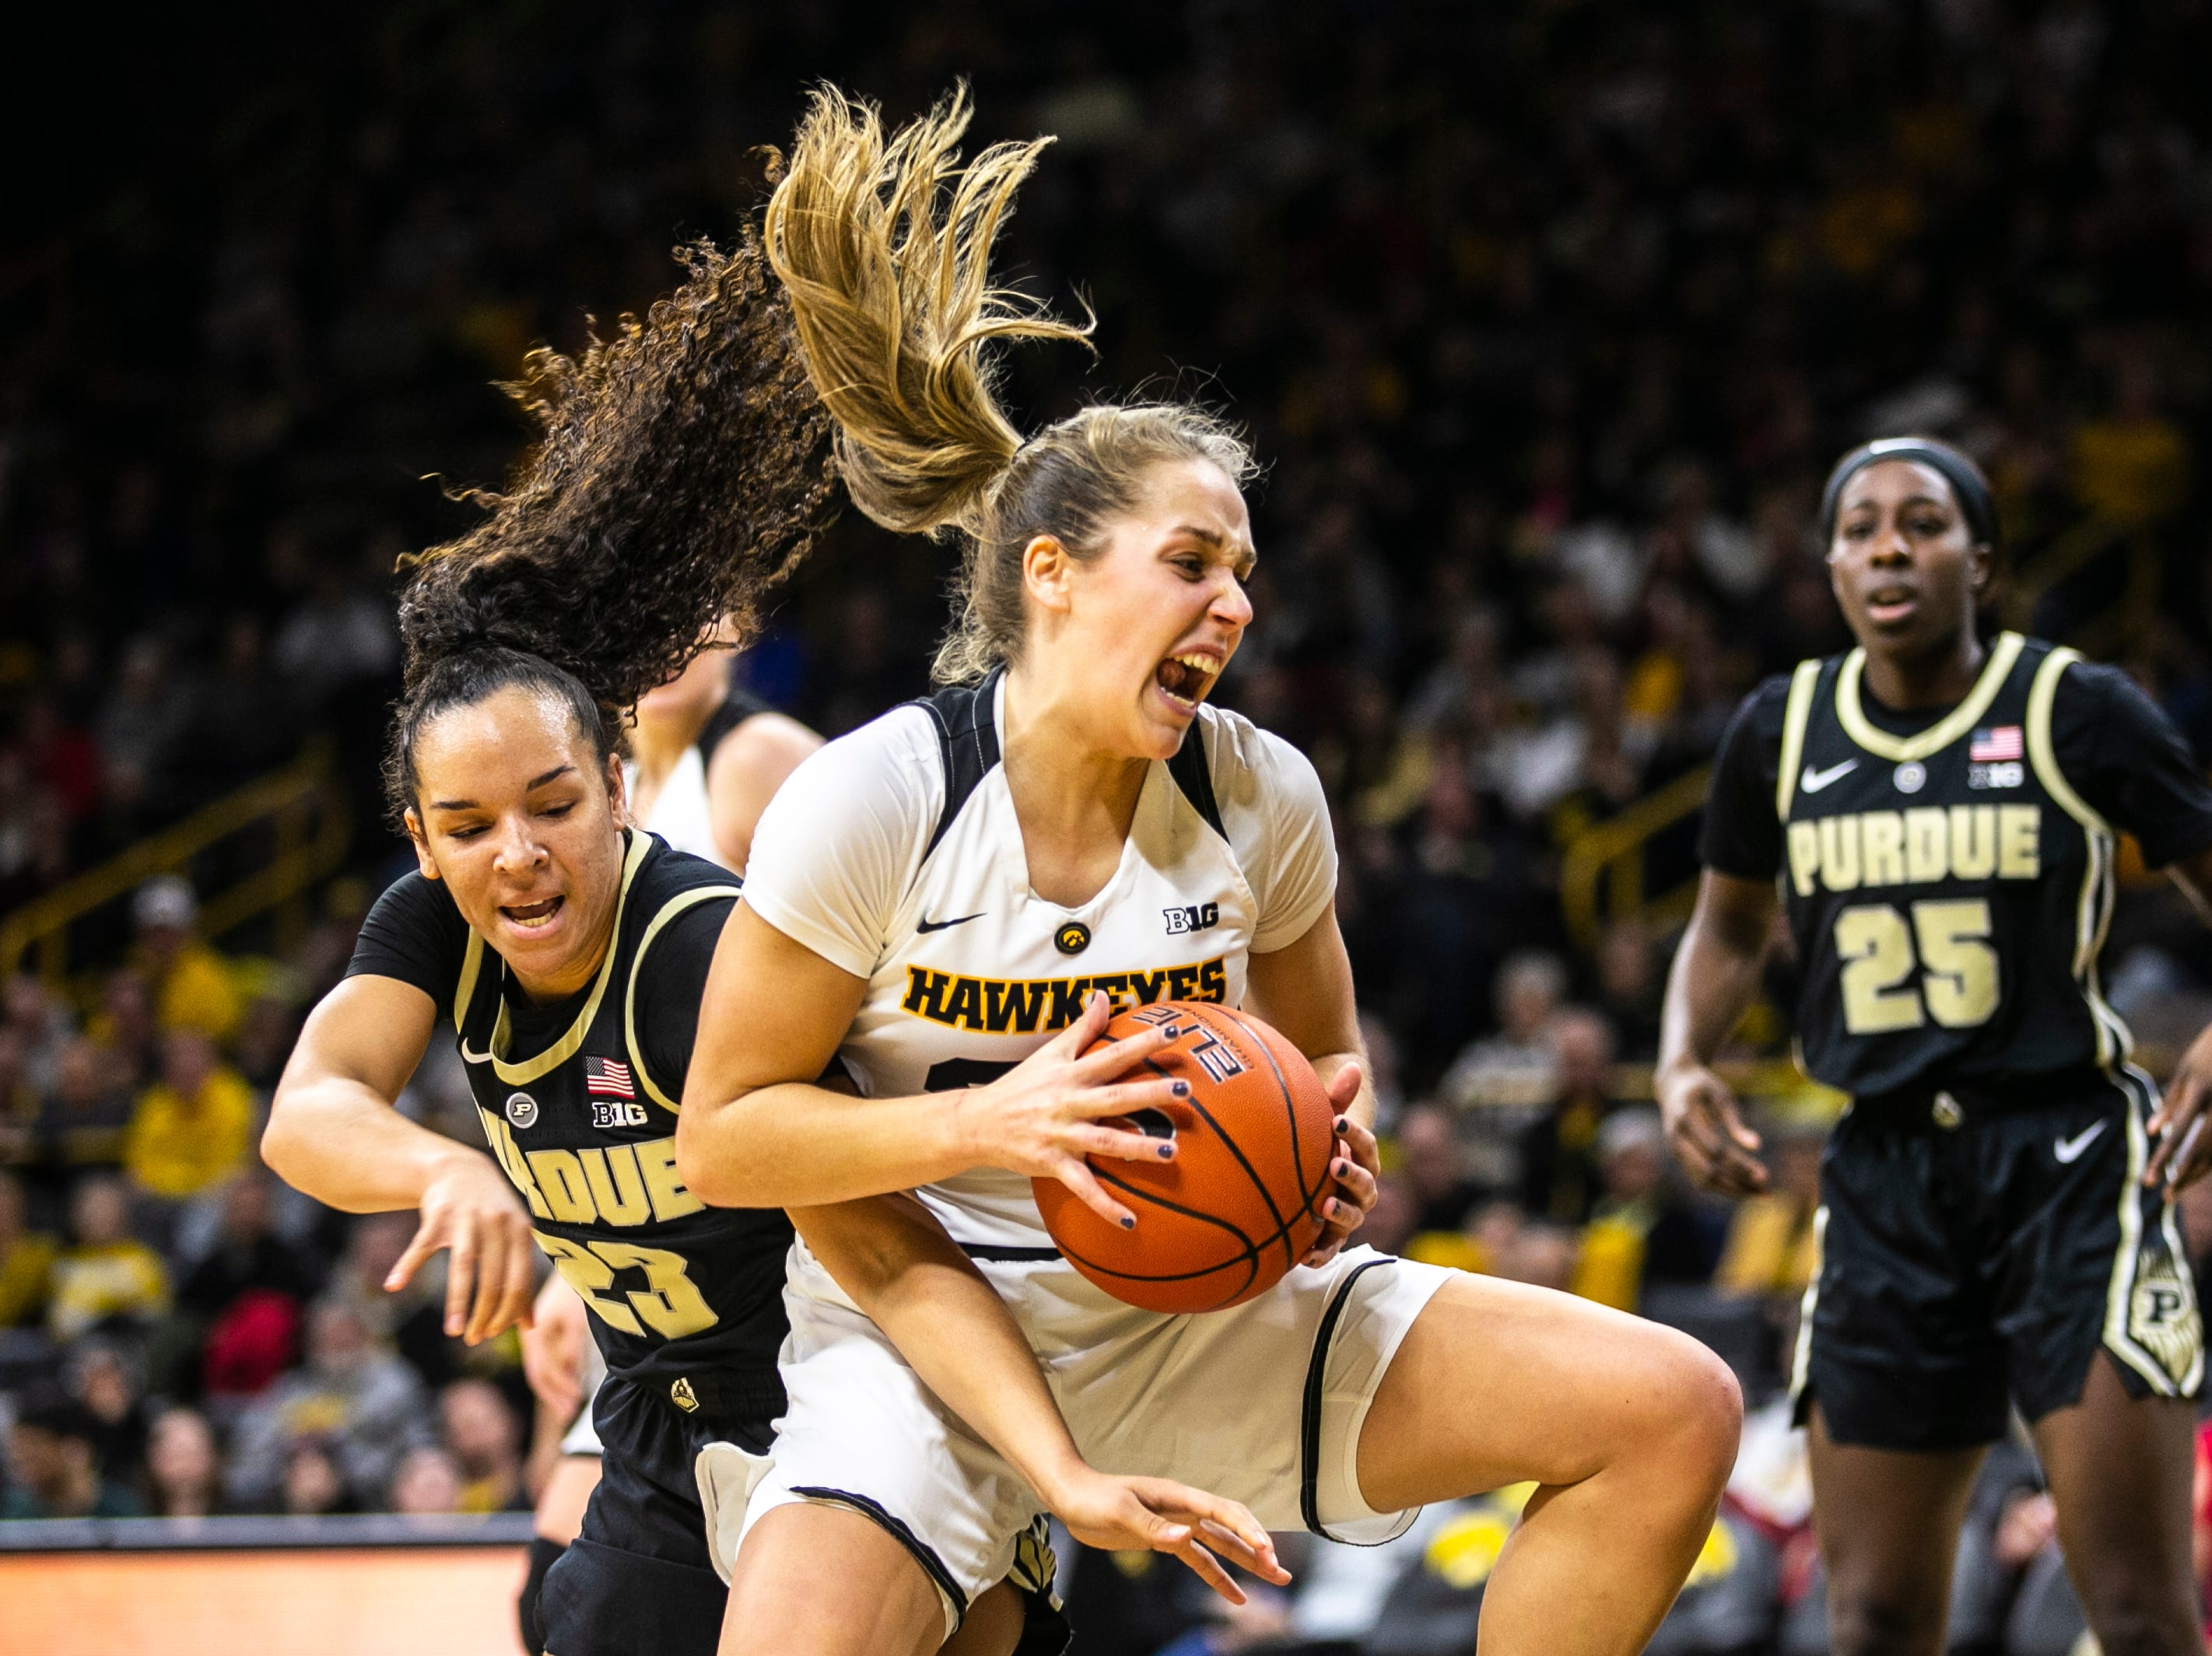 Iowa guard Kathleen Doyle drives to the hoop past Purdue guard Kayana Traylor (23) during a NCAA Big Ten Conference women's basketball game on Sunday, Jan. 27, 2019, at Carver-Hawkeye Arena in Iowa City, Iowa.